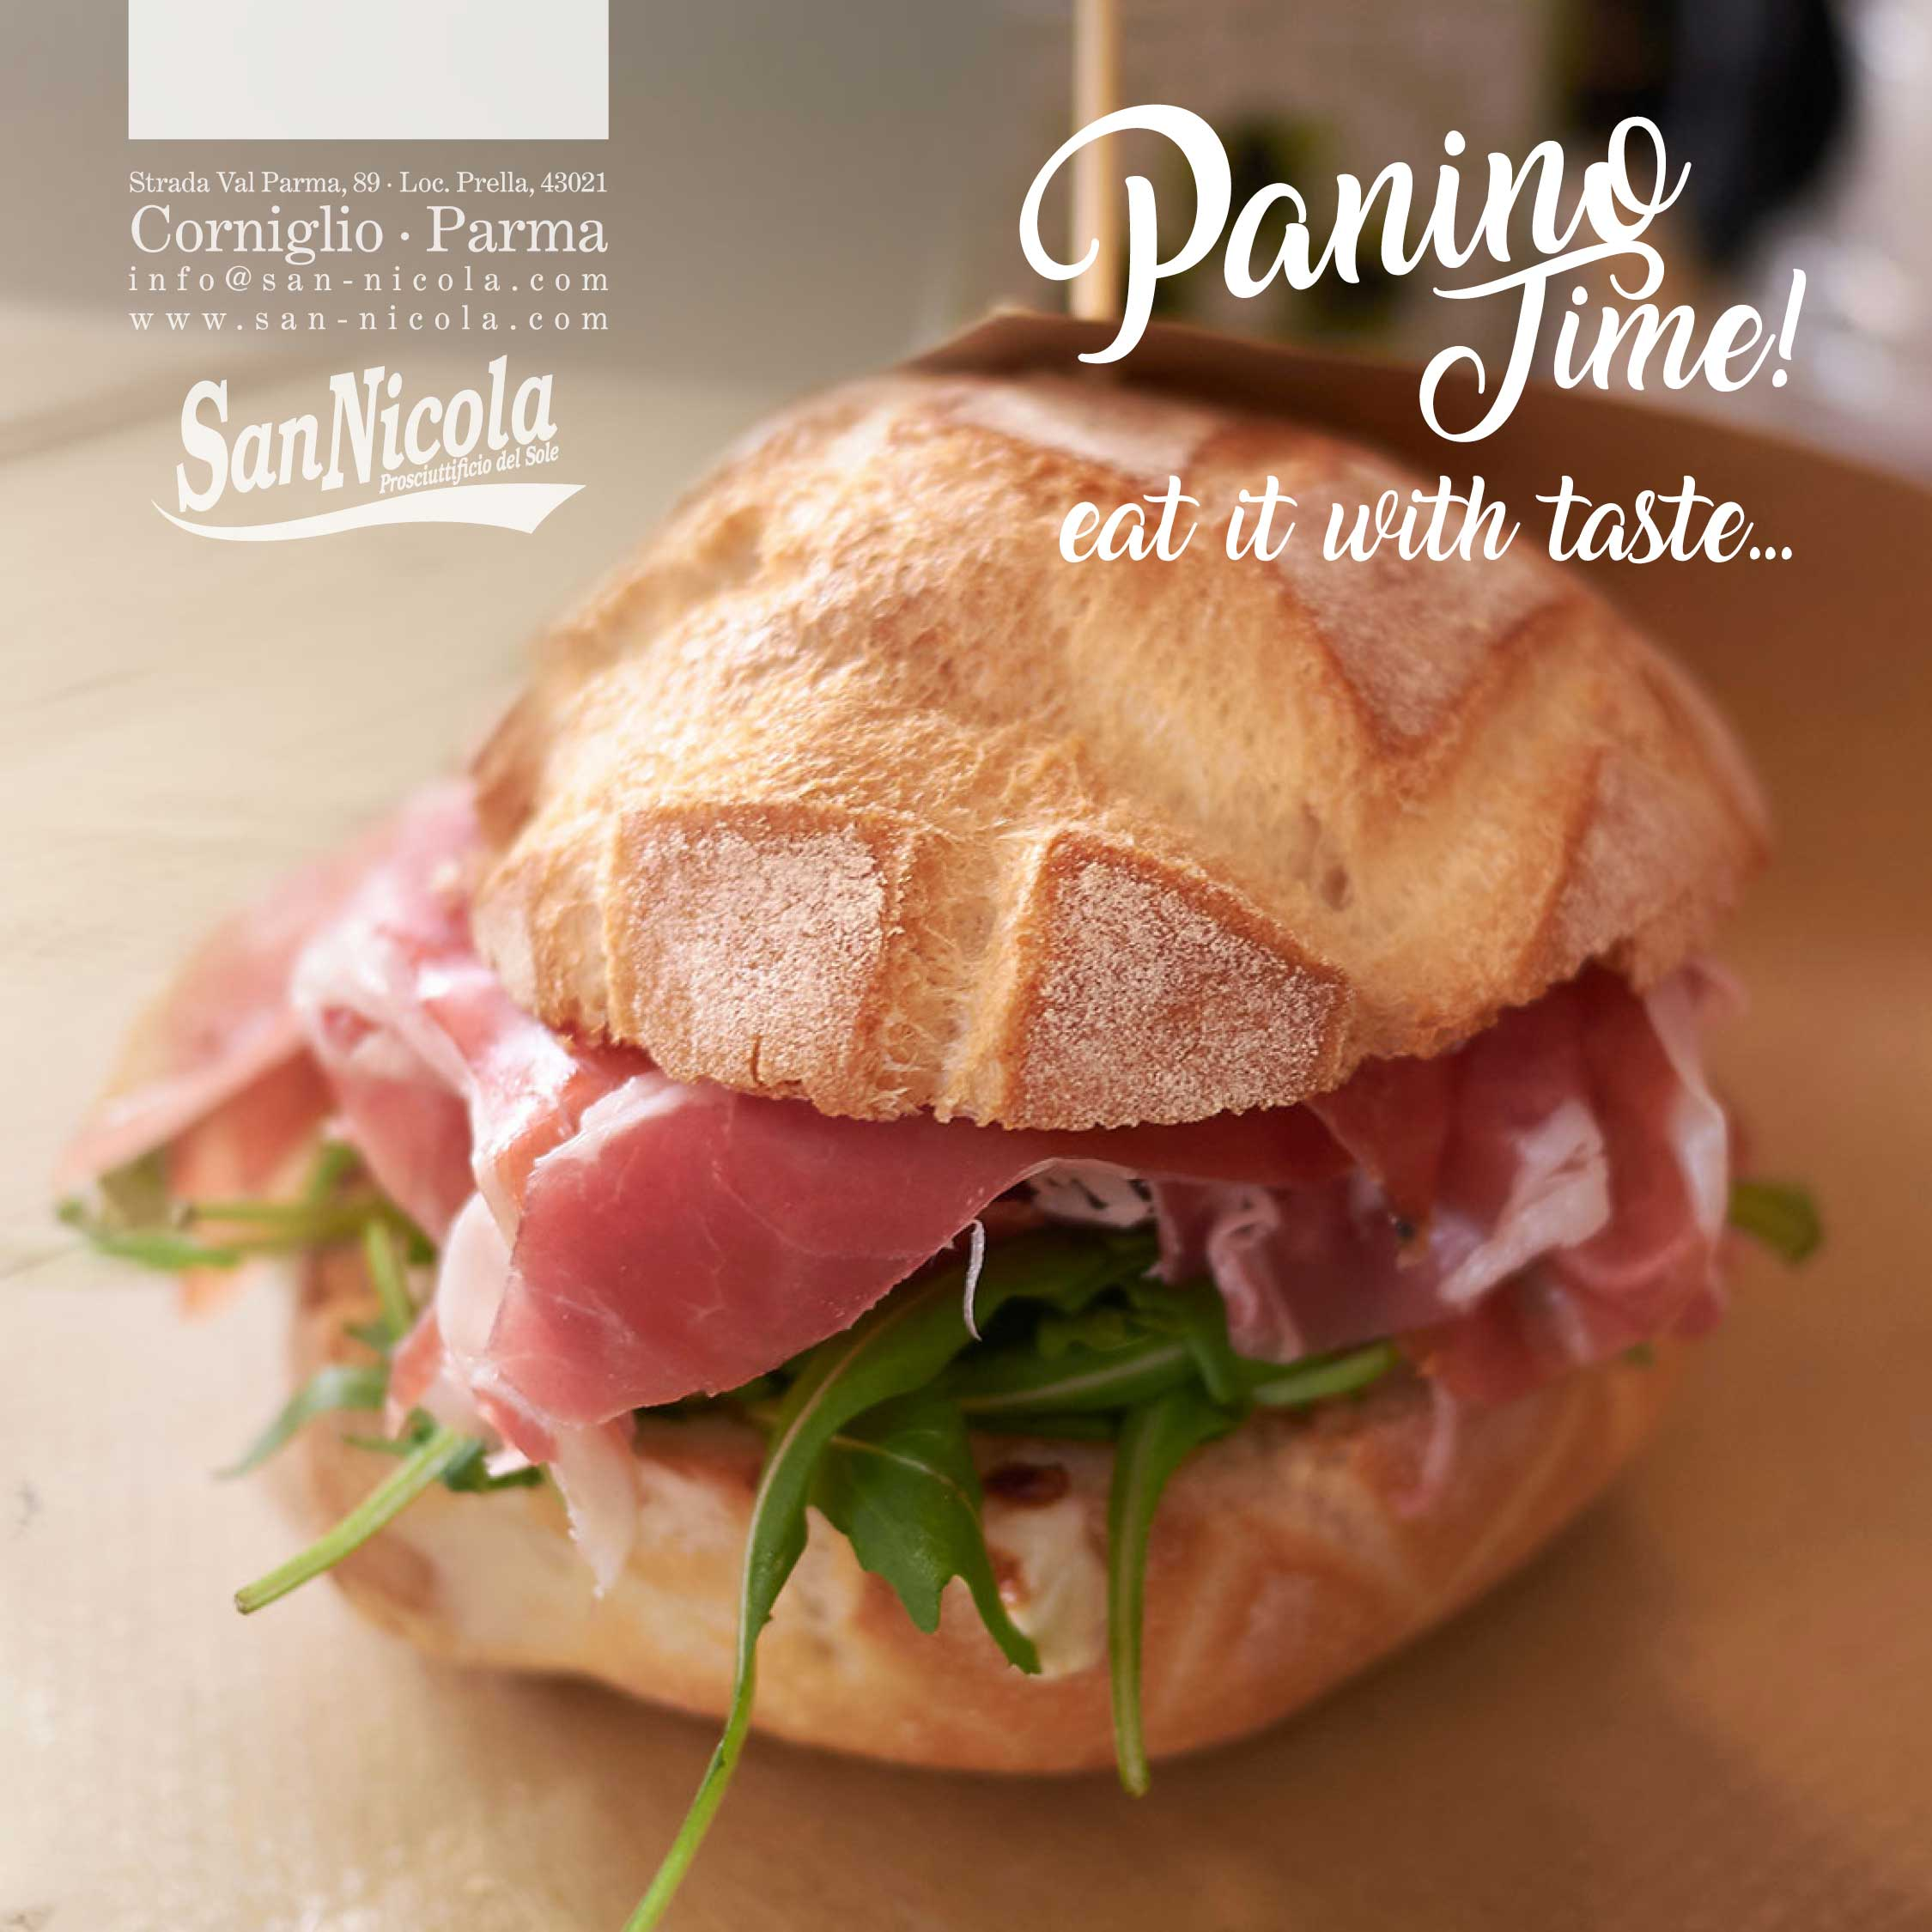 Panino time with Prosciutto San Nicola